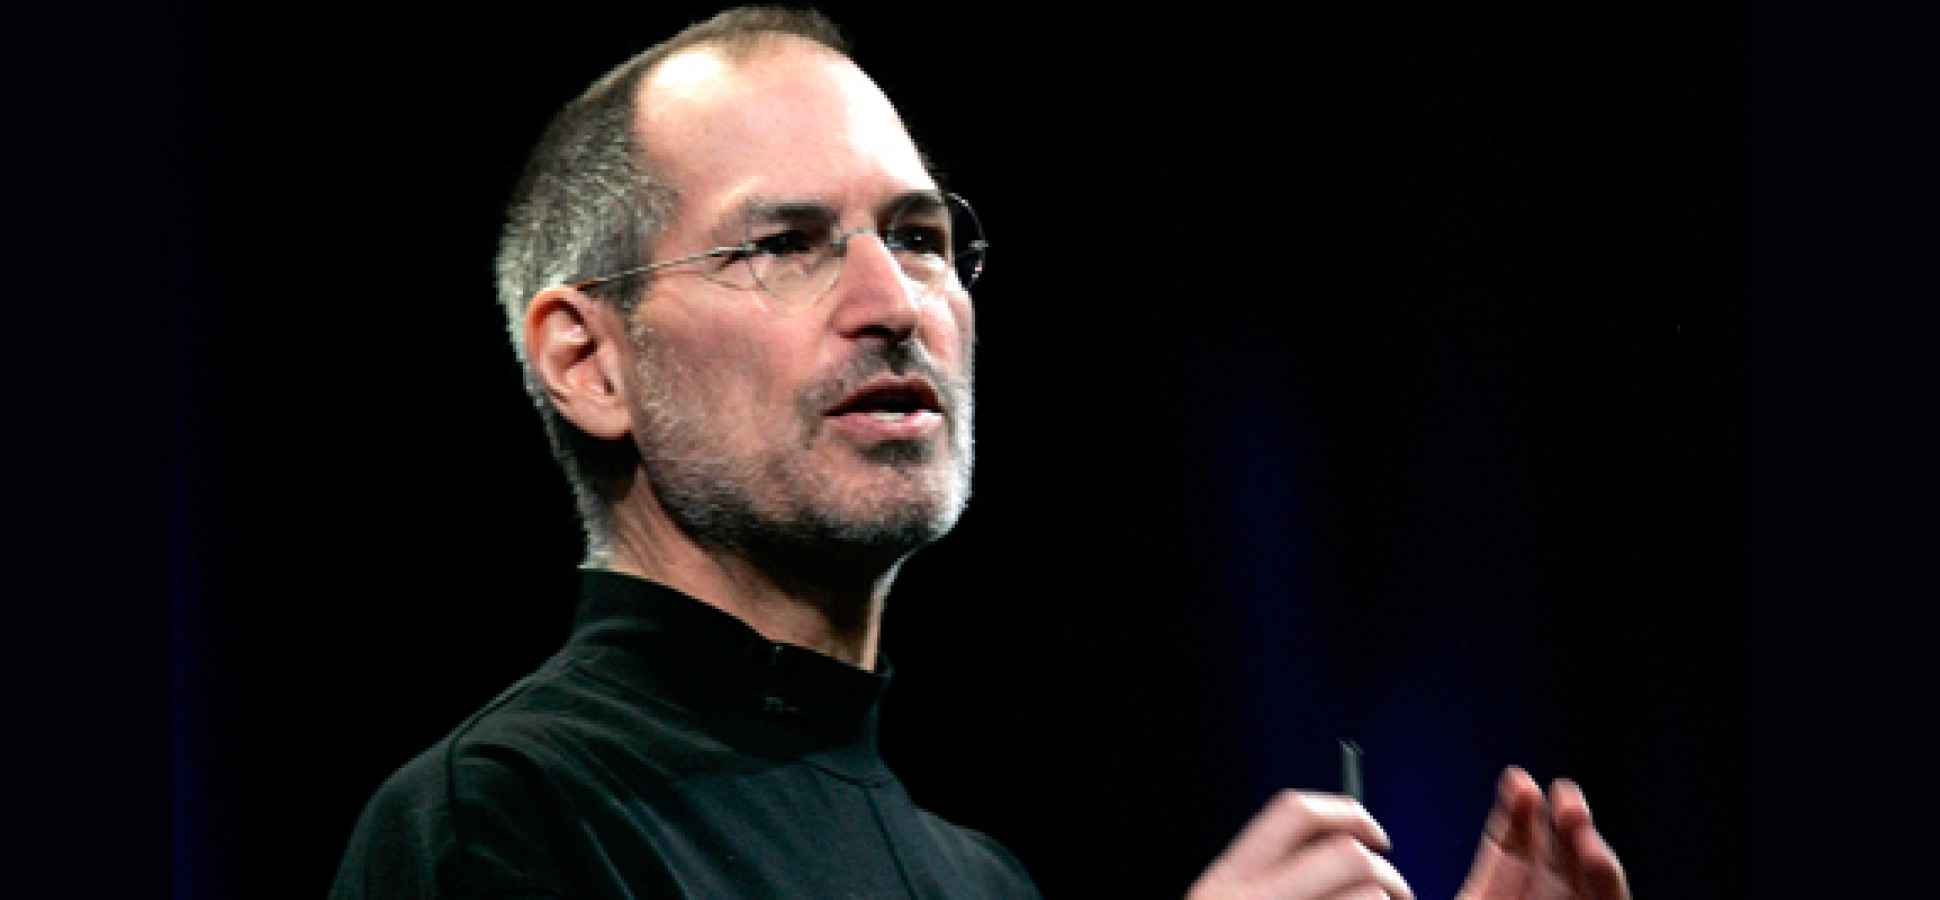 12 Business Lessons I Learned From Steve Jobs